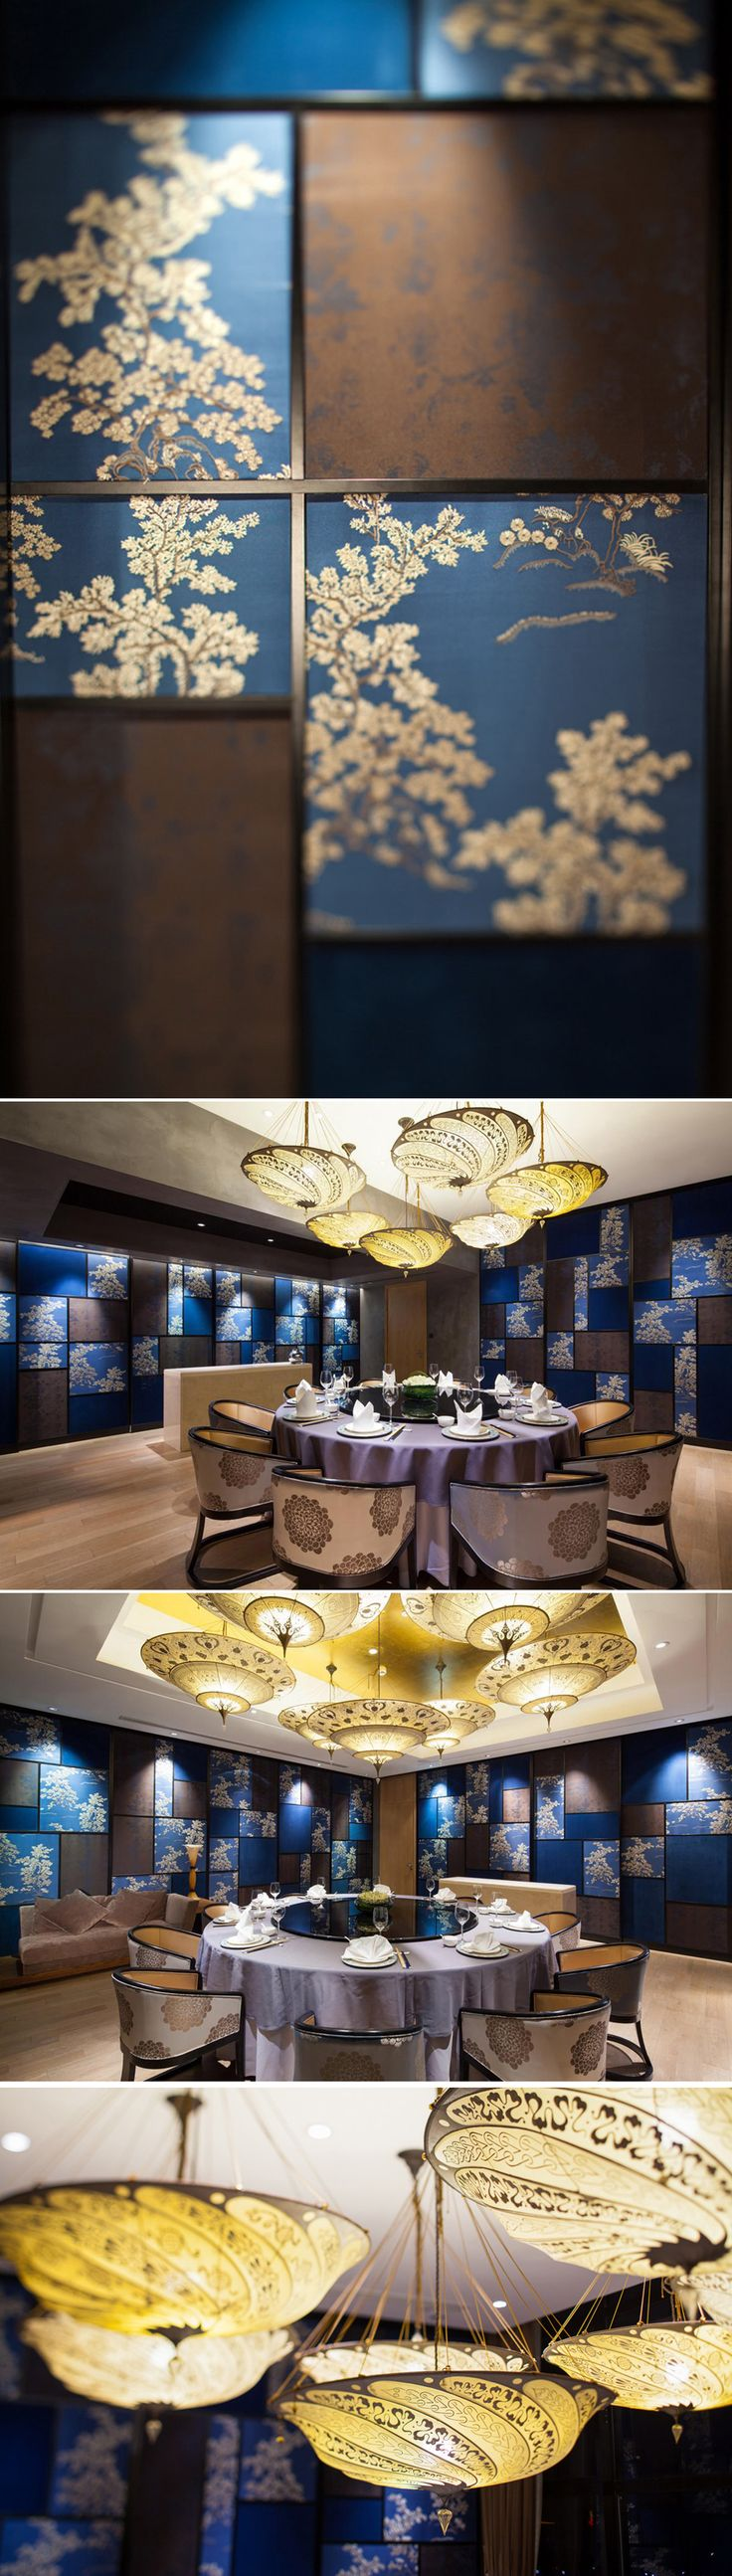 The VIP-room_Chinese fabric wall & Lighting Detail of Cantonese Fine Dining Restaurant Y2C2 by Kokaistudios